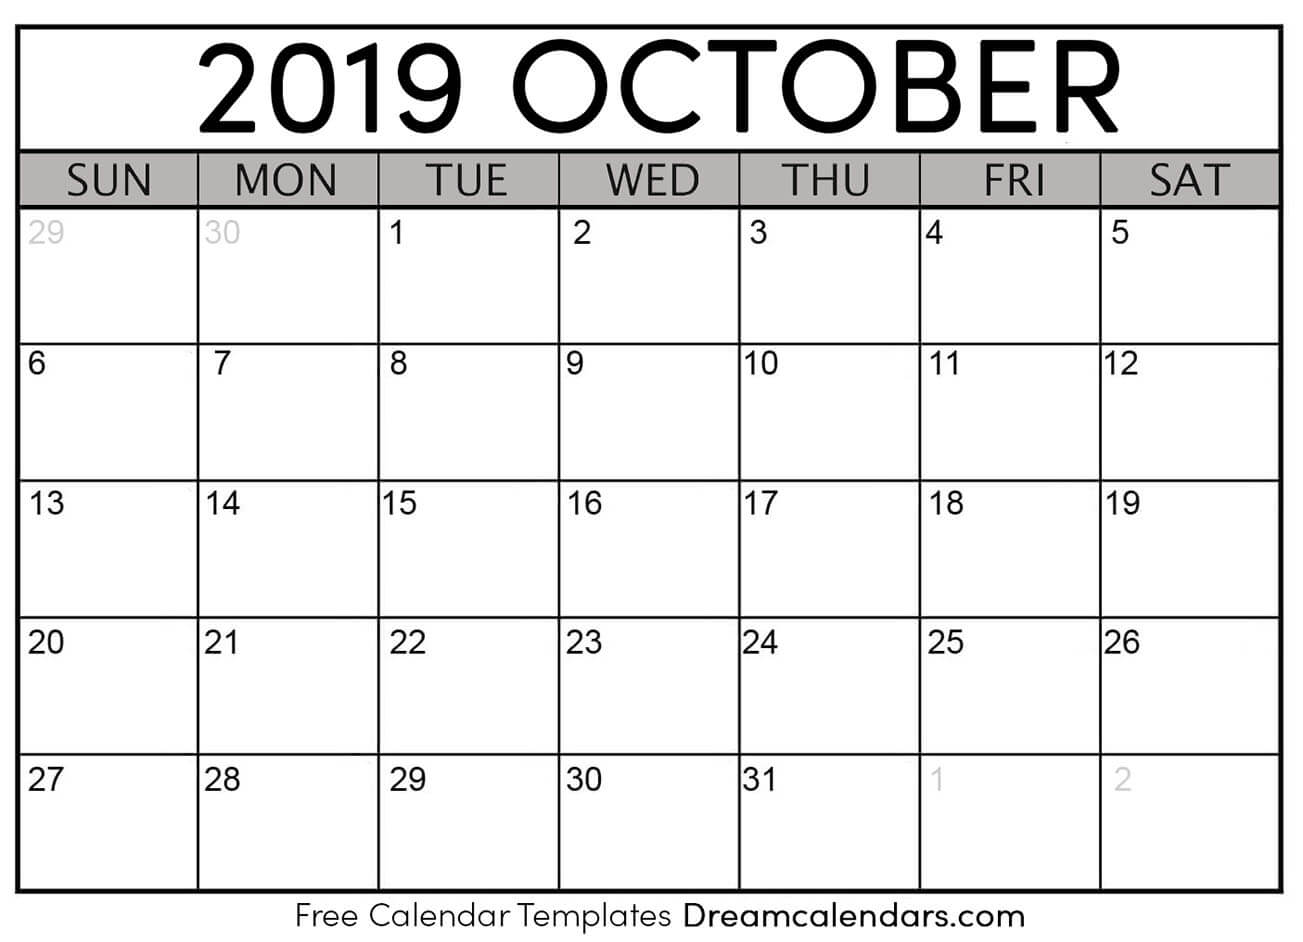 image relating to Printable Oct Calendar known as Printable Oct 2019 Calendar